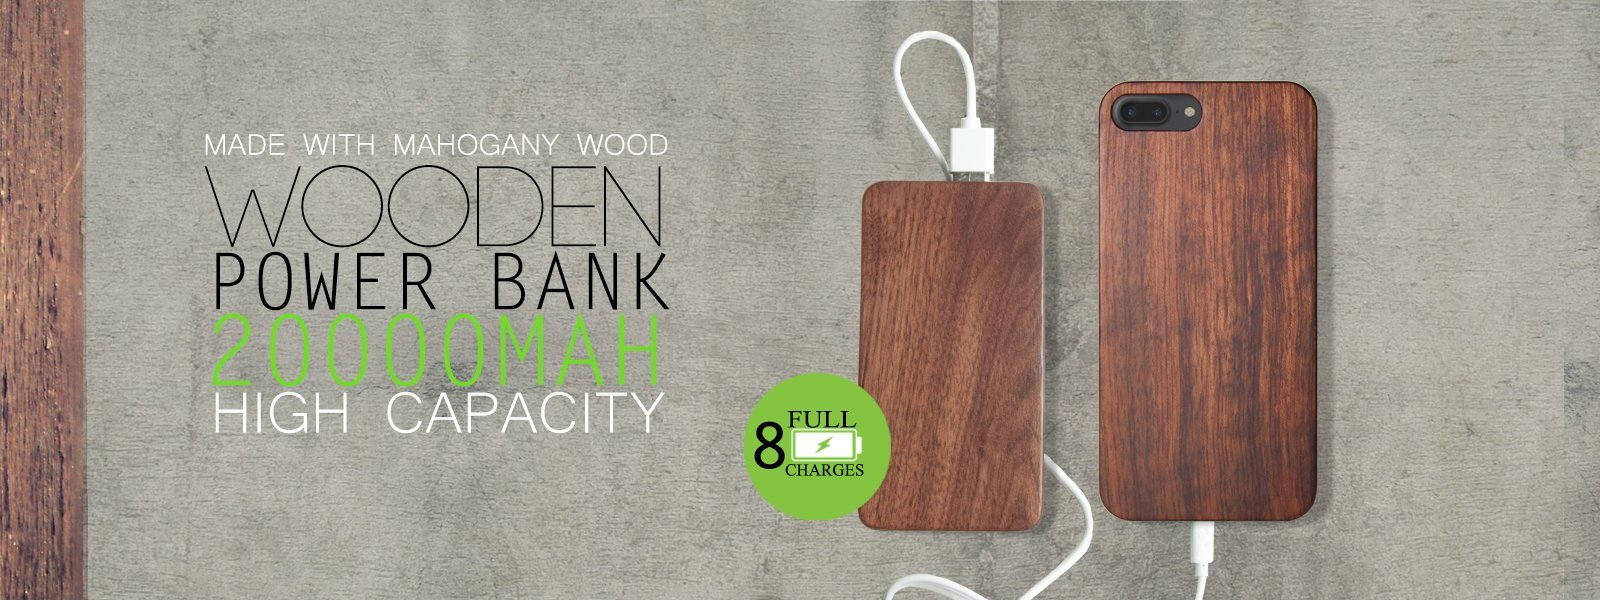 Wooden Portable Power Bank 20000mah Capacity + iPhone Case